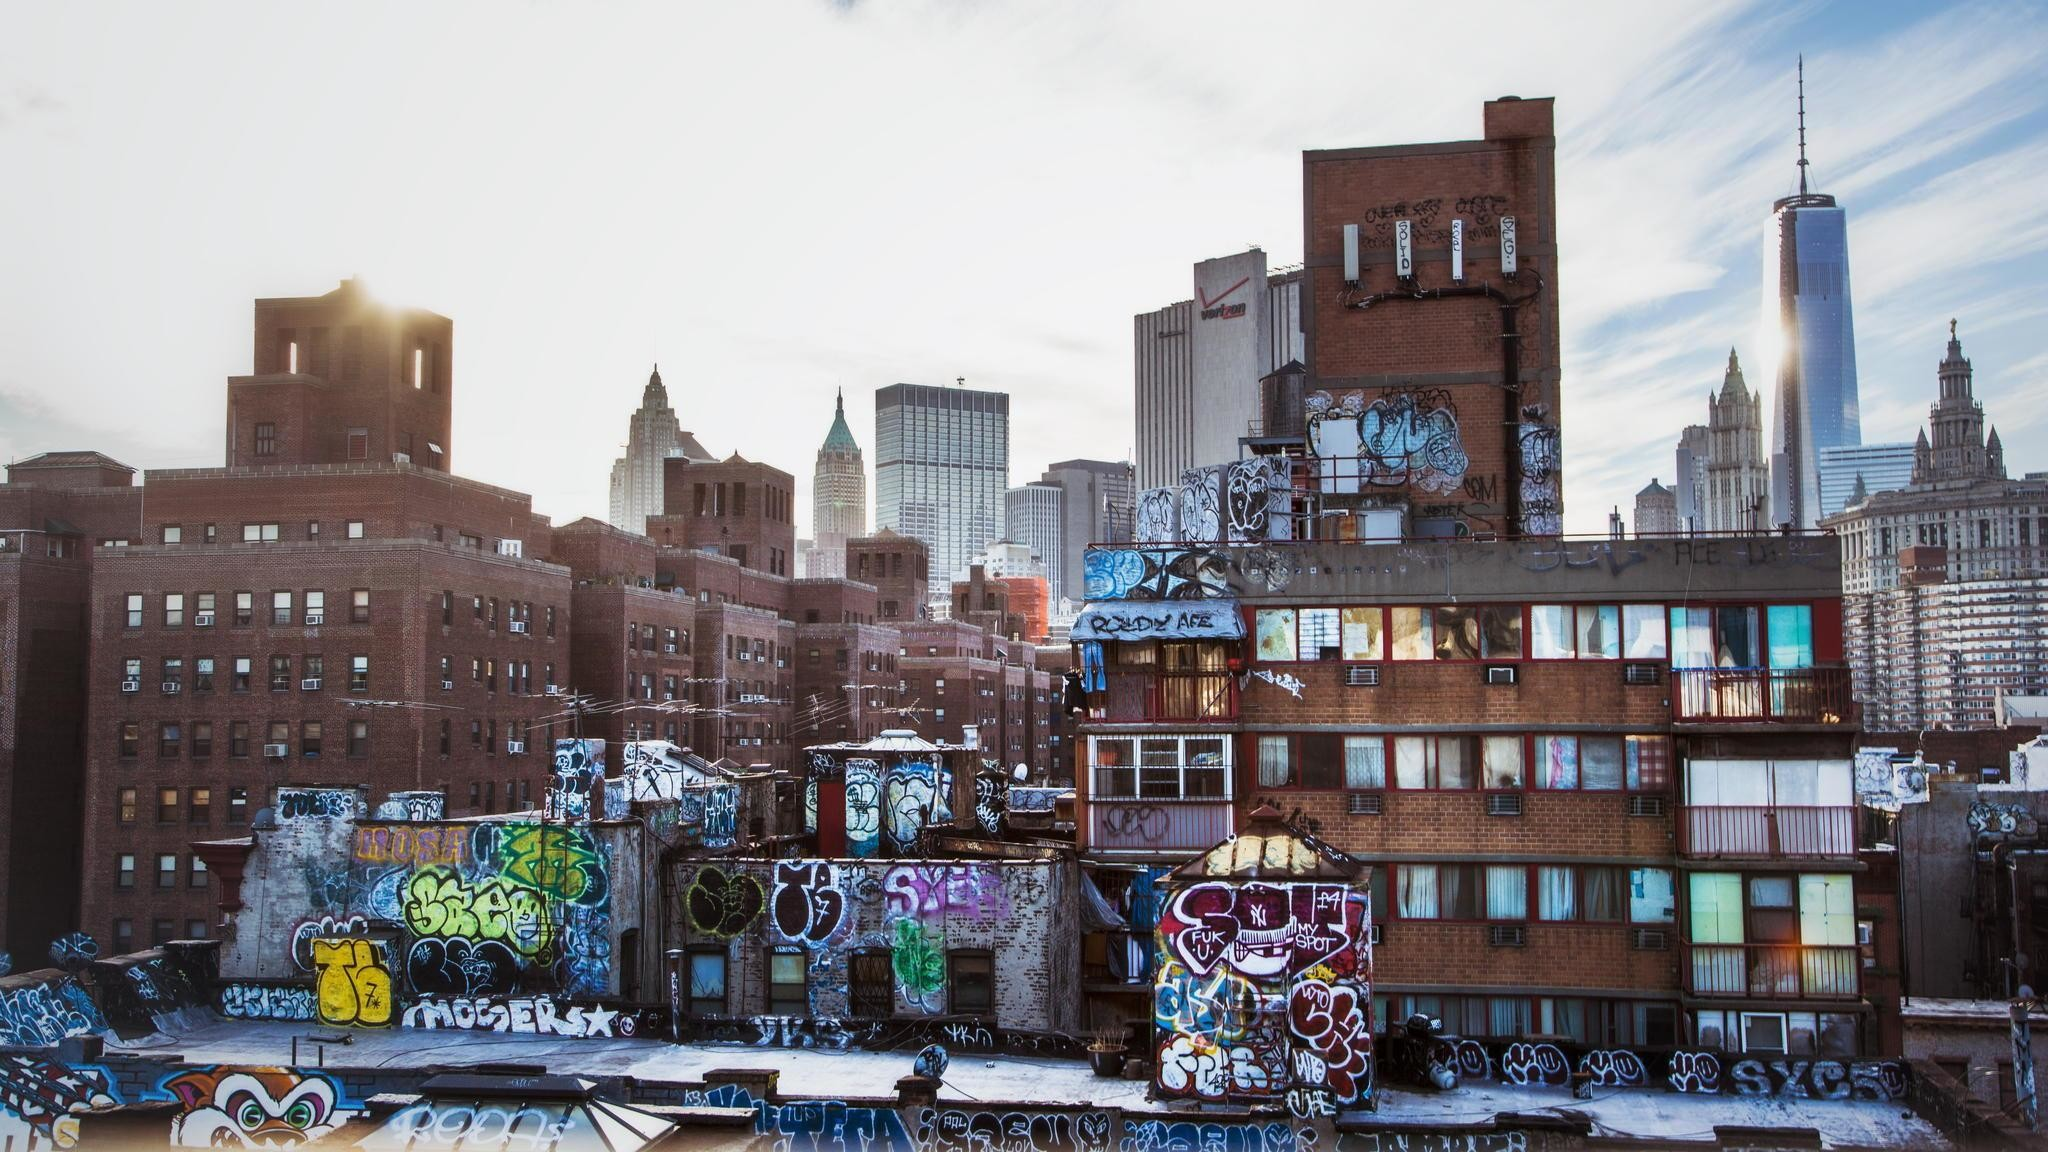 New-york-city-urban-layers-graffiti-wallpaper-download-